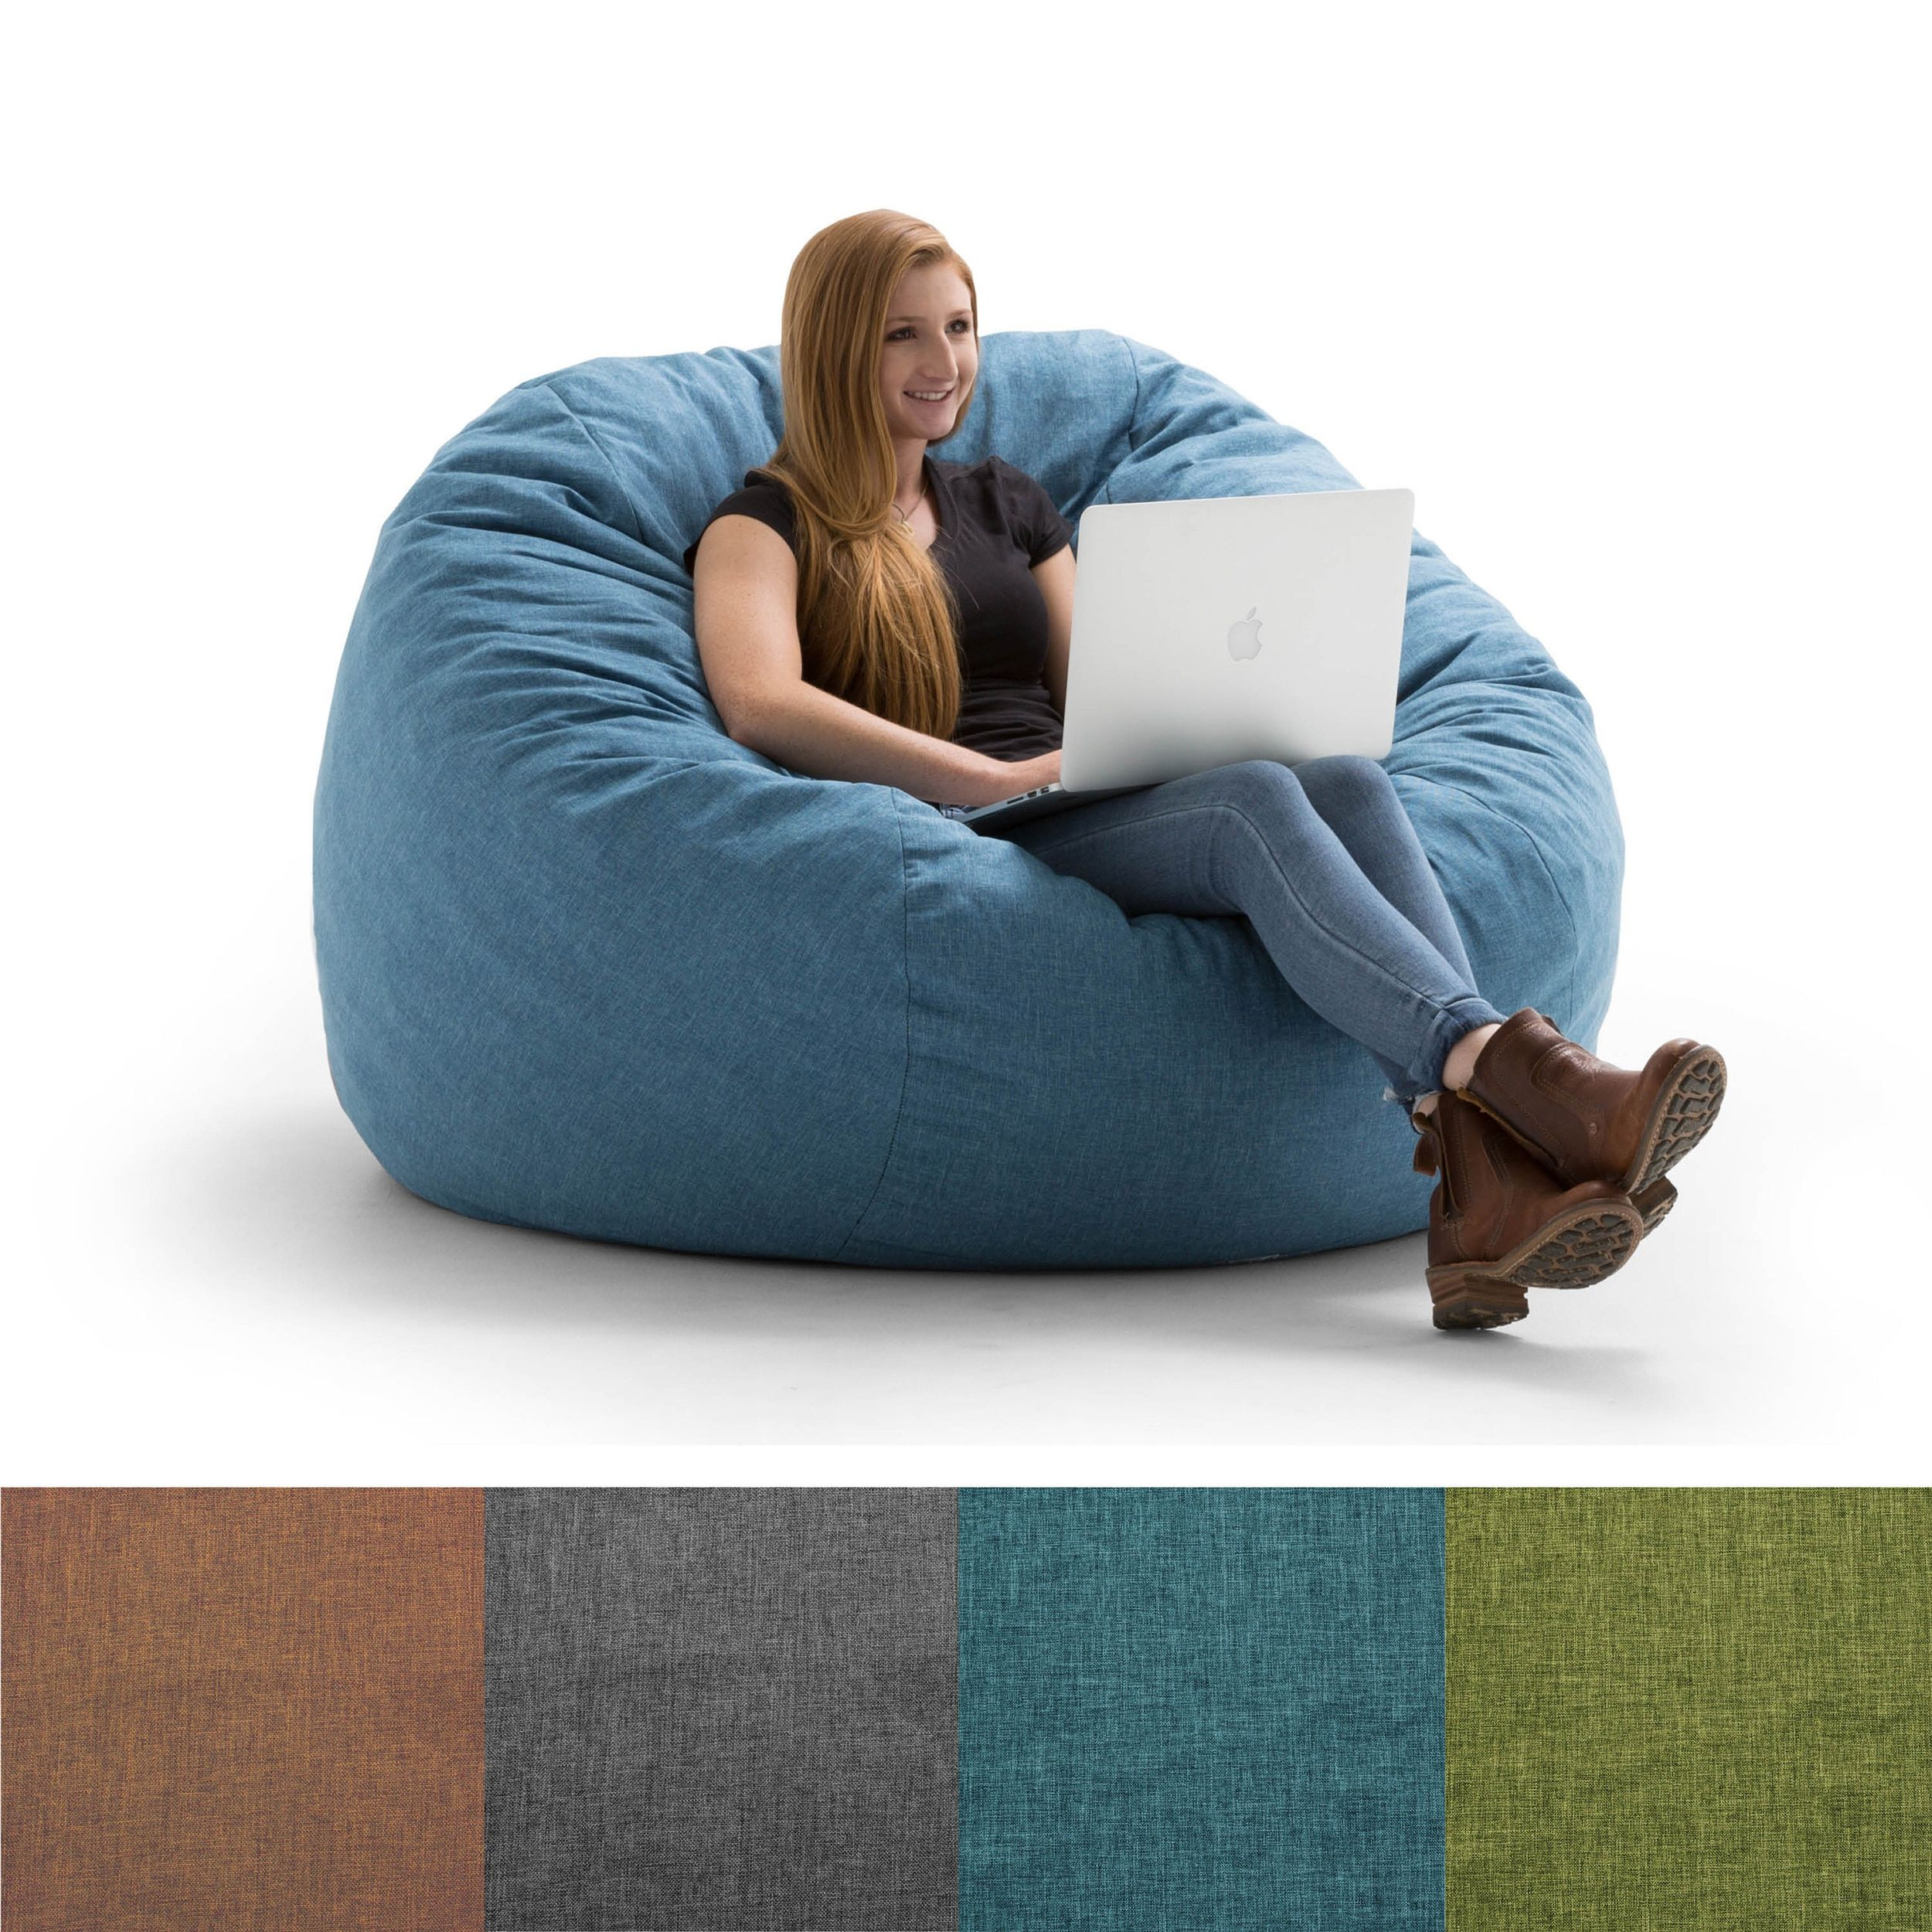 FufSack Big Joe Lux King Linen Memory Foam Bean Bag Chair Products